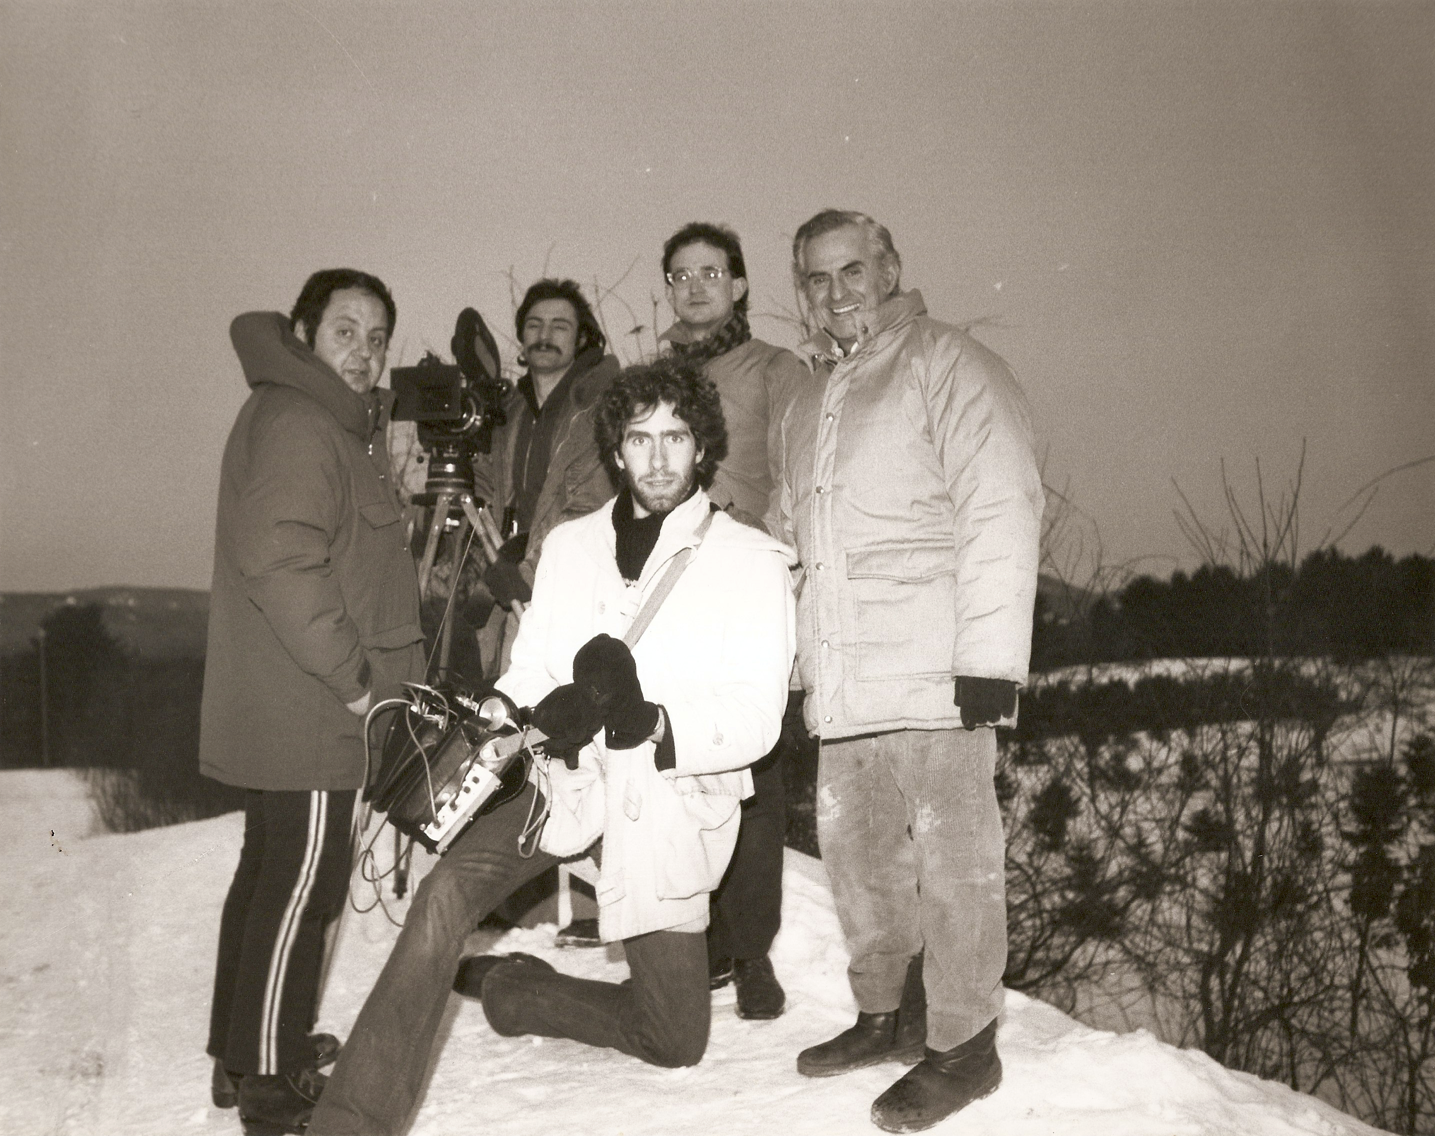 On location in New Hampshire,February1978.